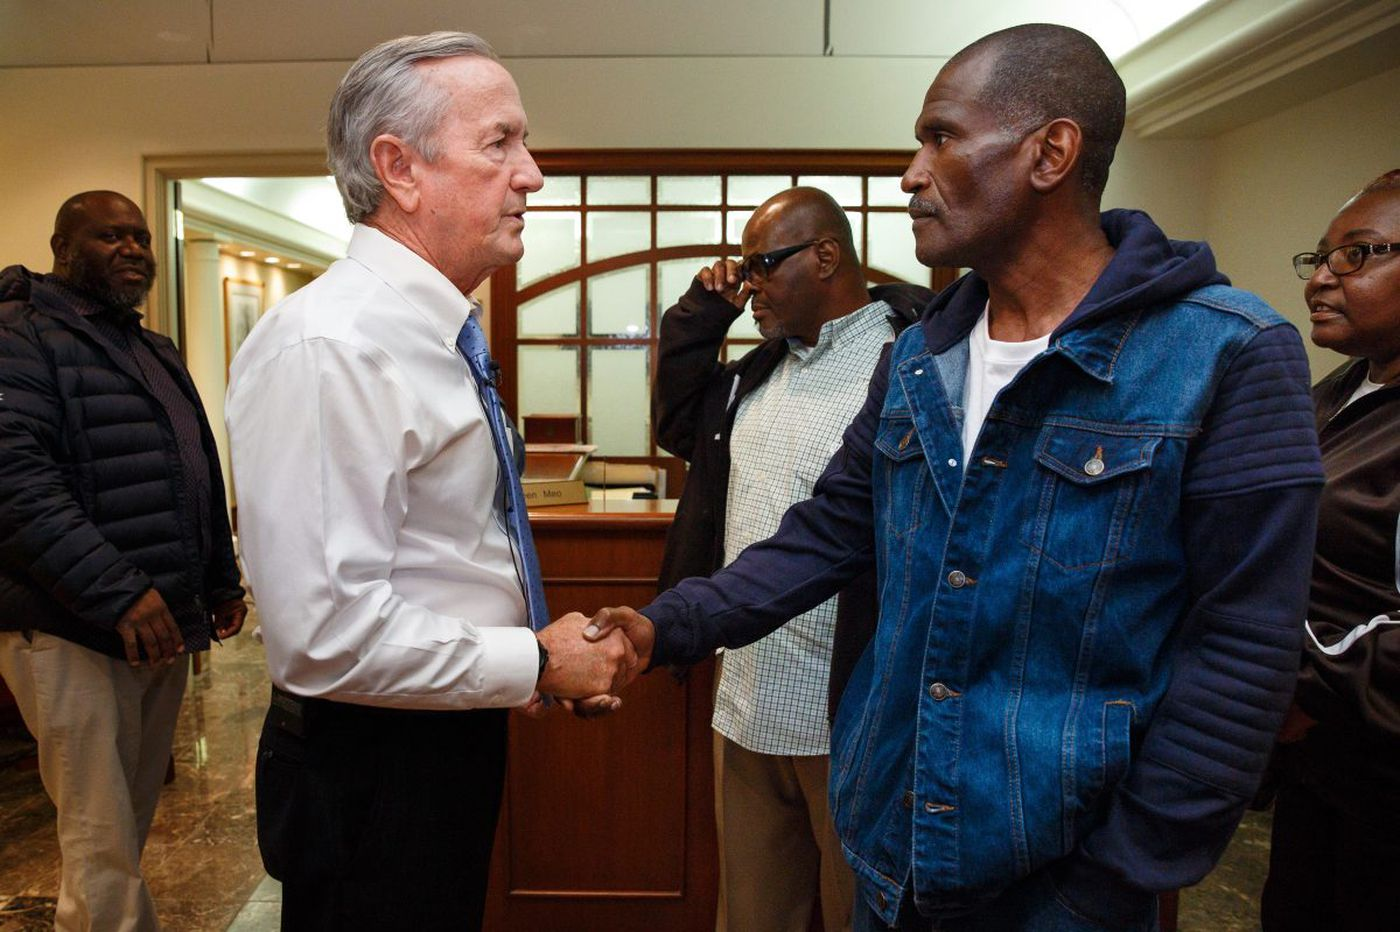 A prosecutor meets the juvenile lifer he locked up for 40 years - and apologizes